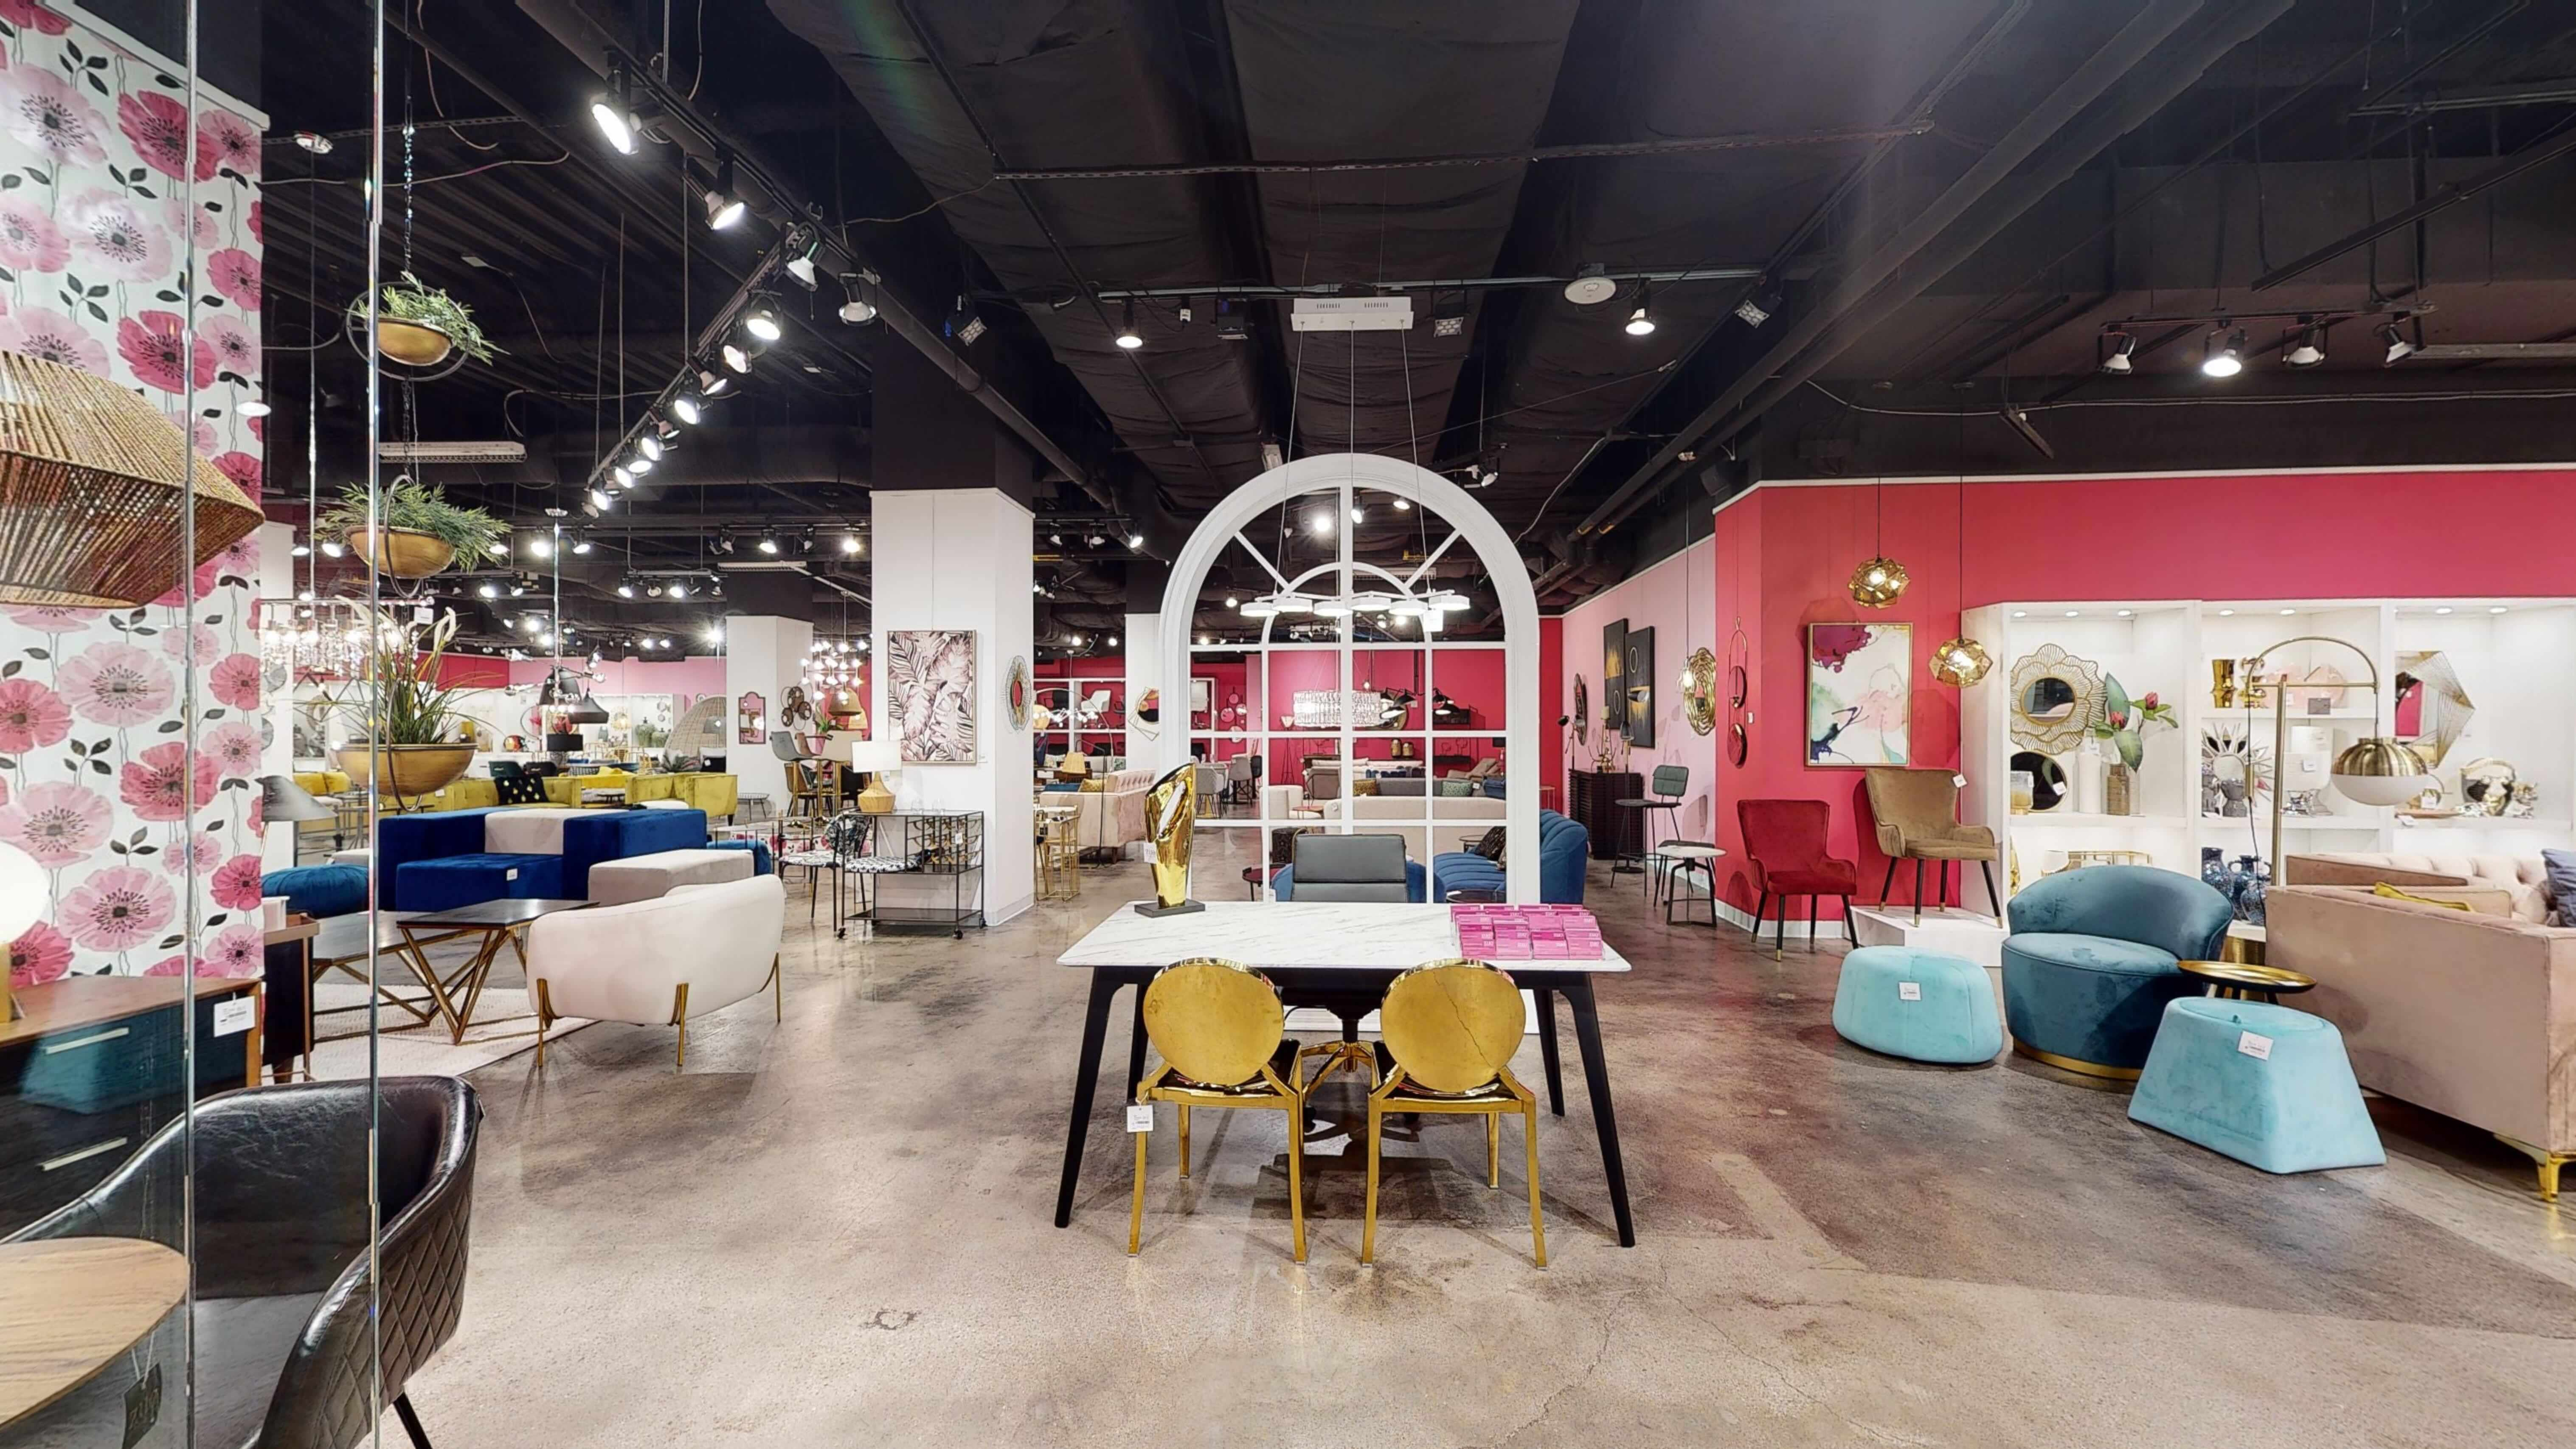 Zuo relocates into larger Las Vegas Showroom